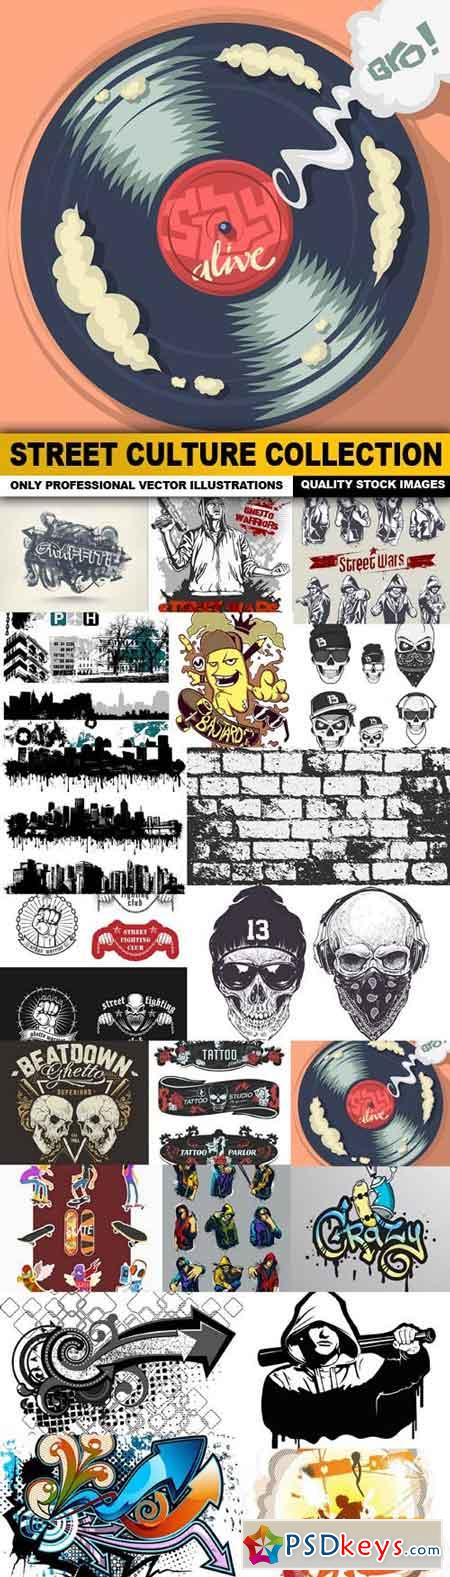 Street Culture Collection - 20 Vector